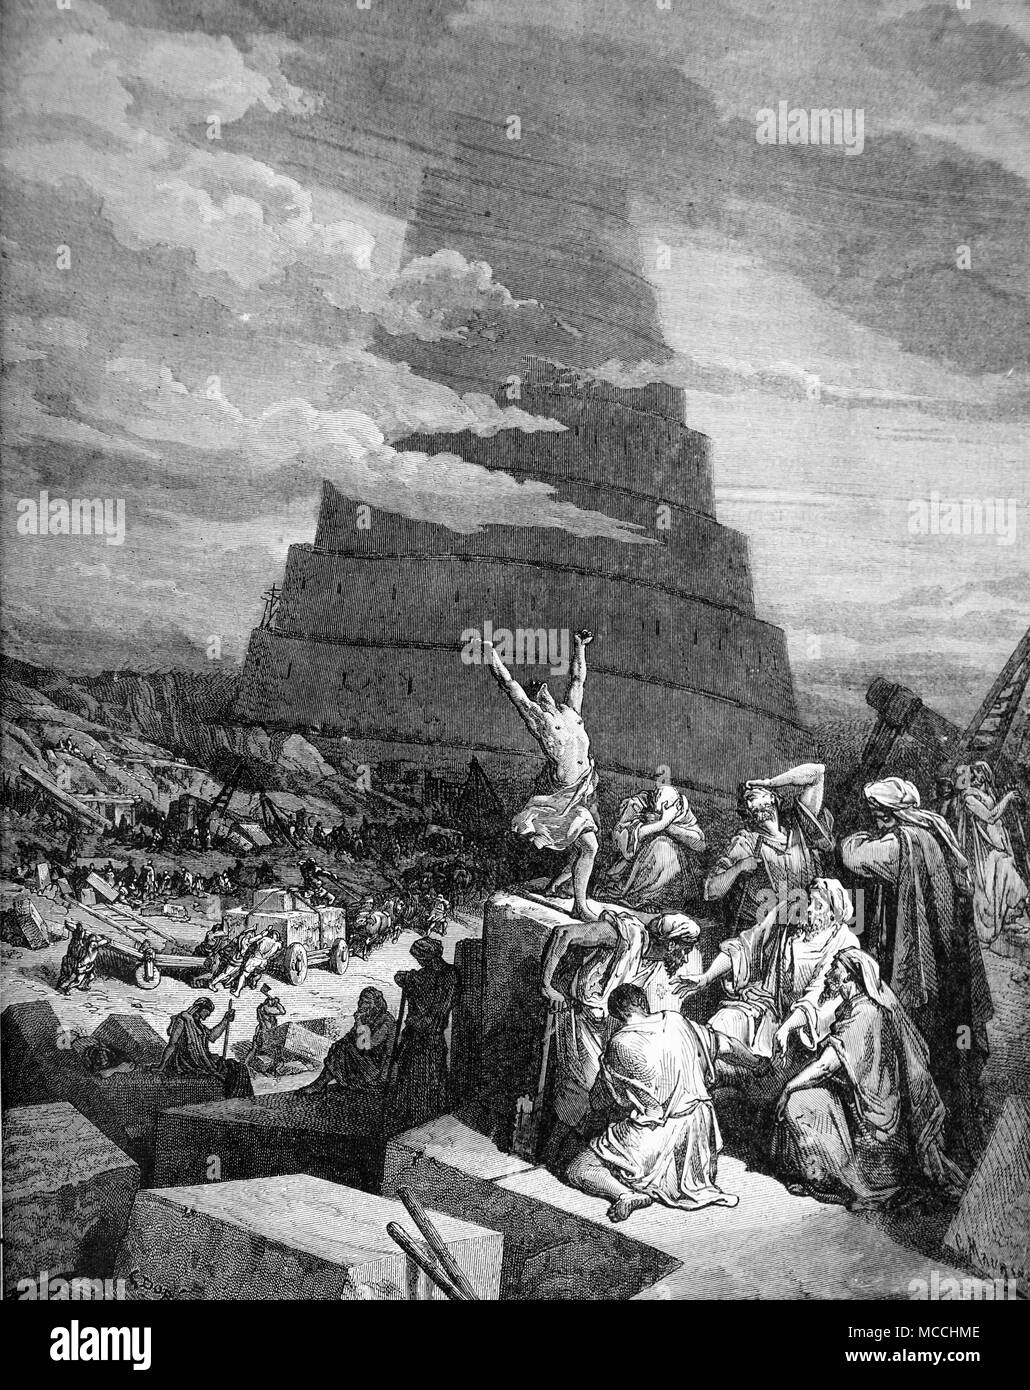 The Confusion of Tongues. bible illustration by Gustave Doré. - Stock Image